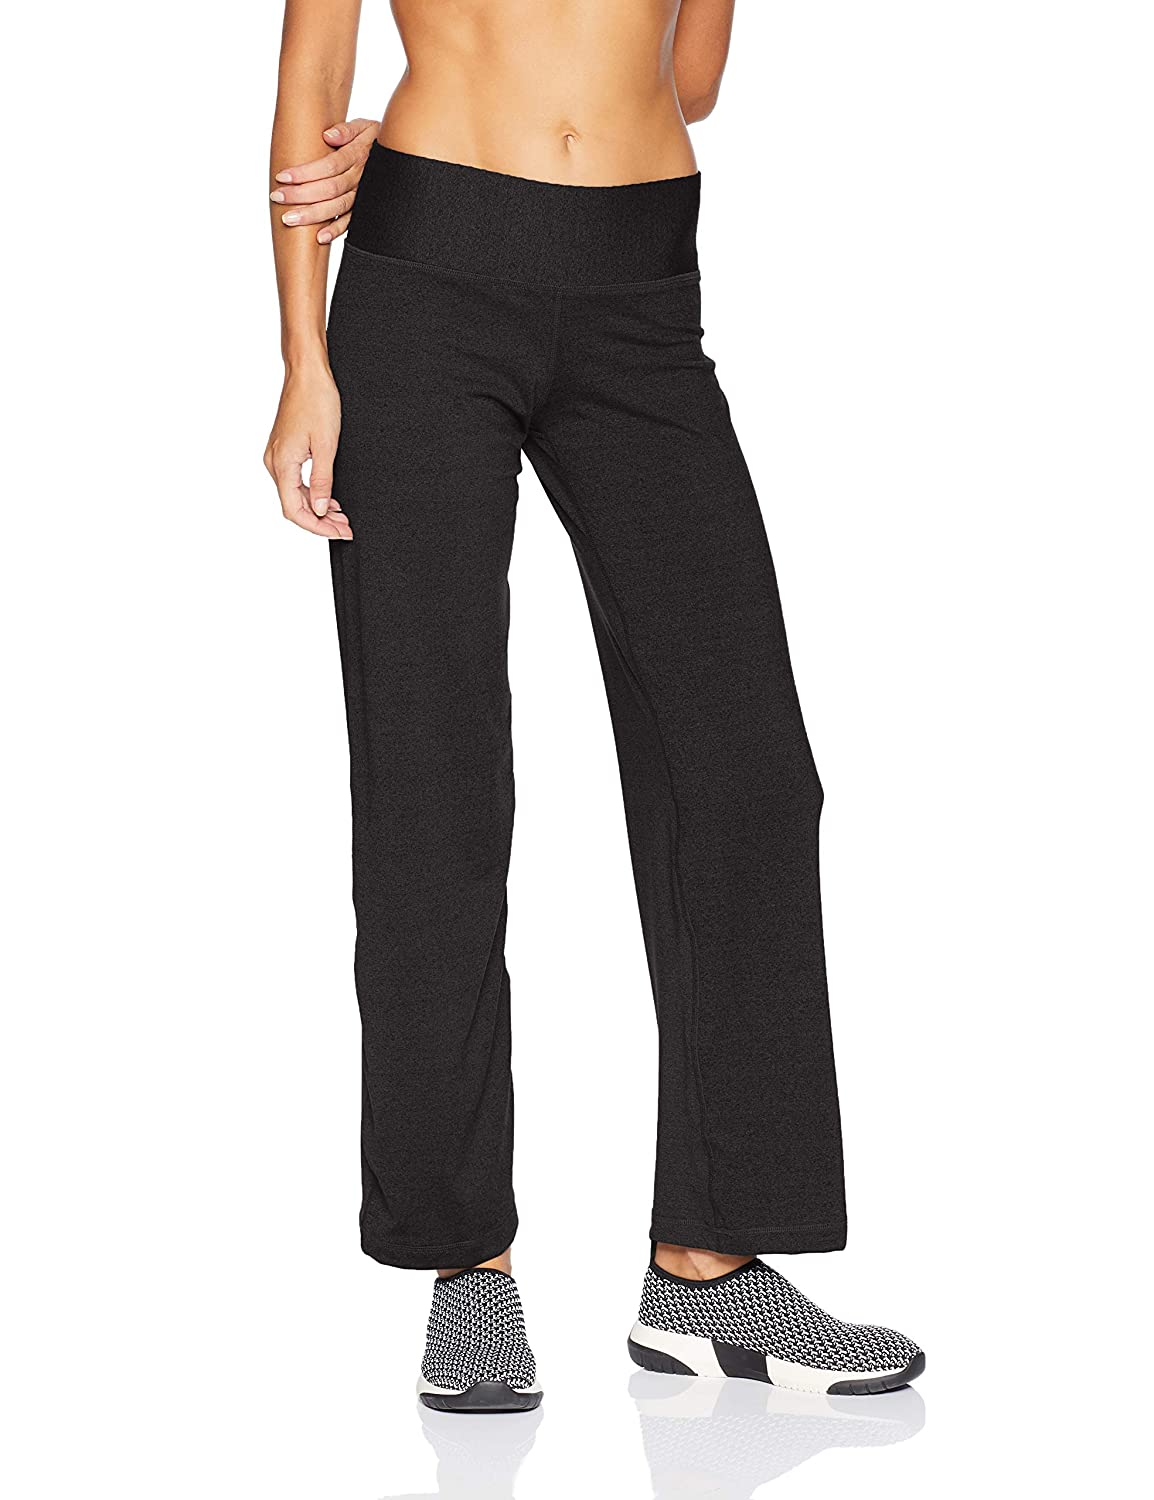 cce8cbddf46 Amazon.com  Champion Women s Absolute Semi-fit Pant with SmoothTec    Clothing